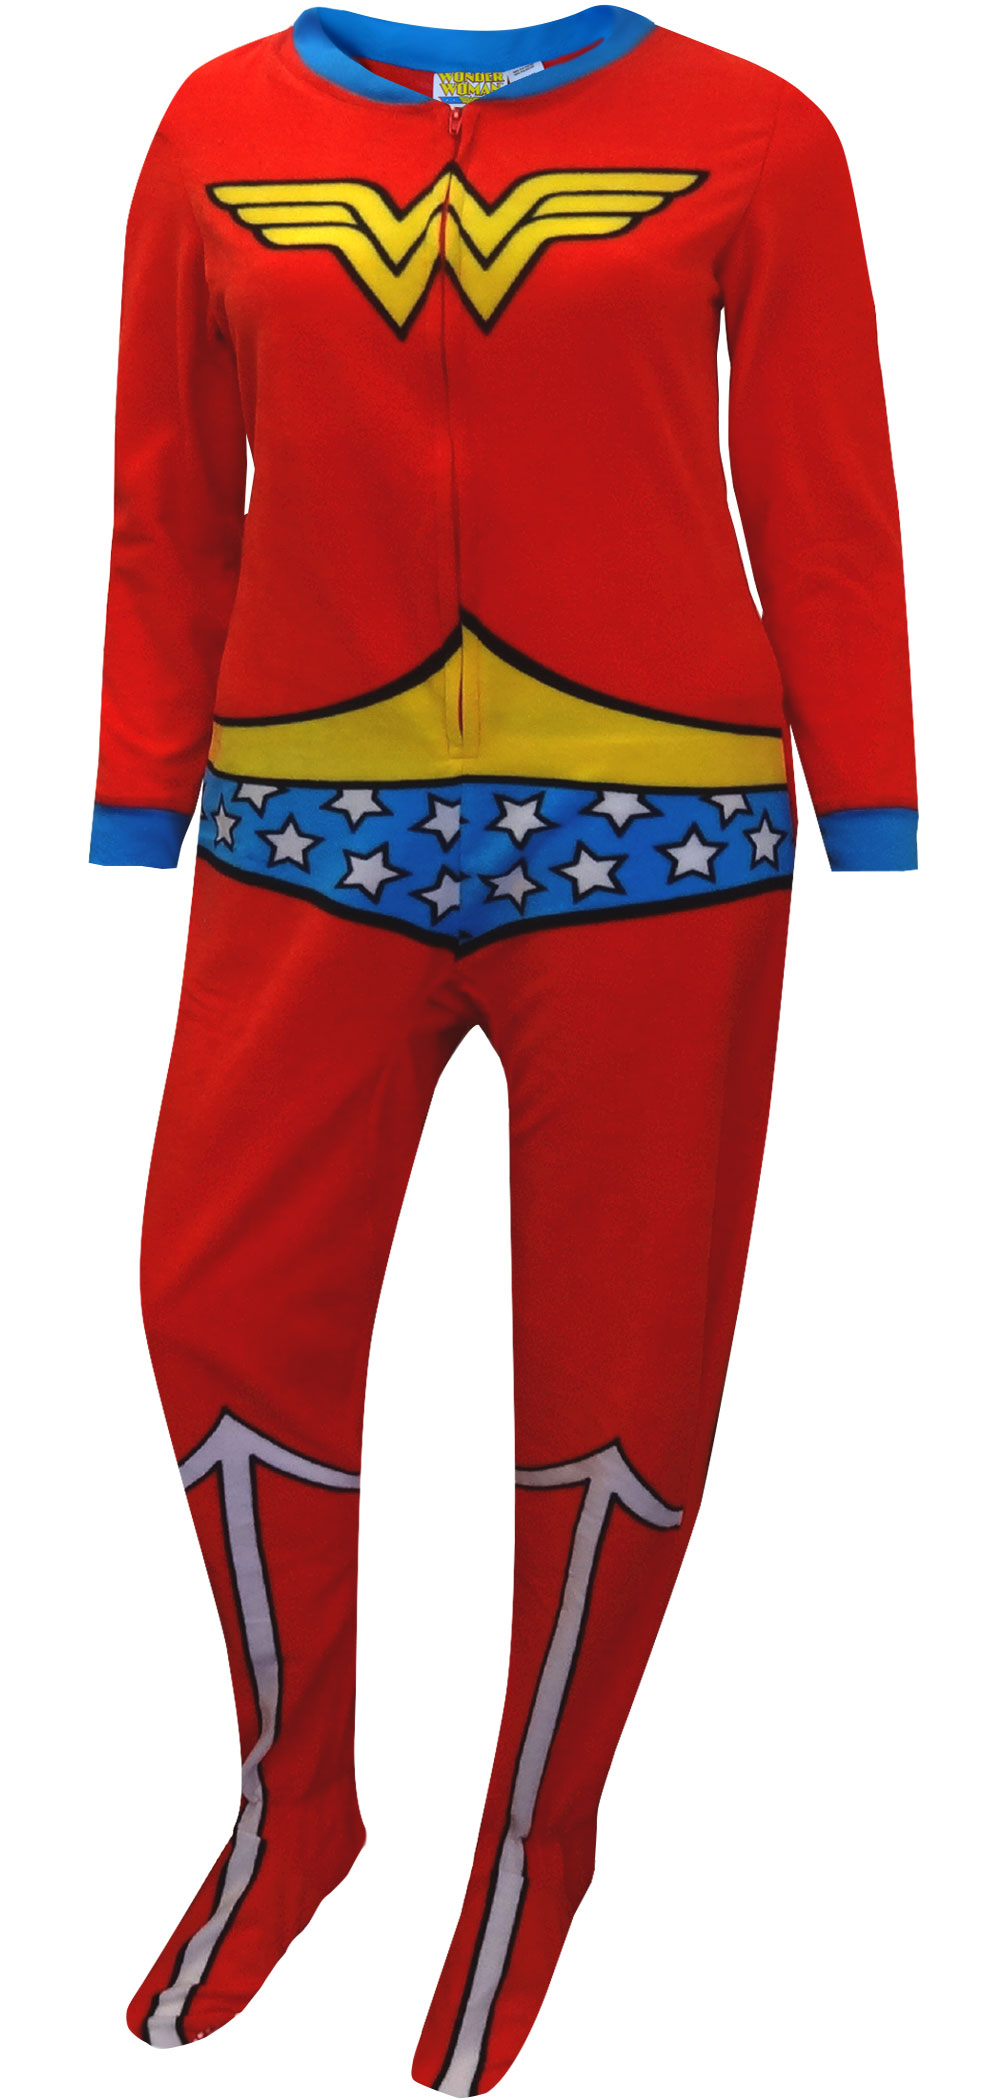 abd762a90 Footie Pajamas for Women- Adult Footed Pajamas